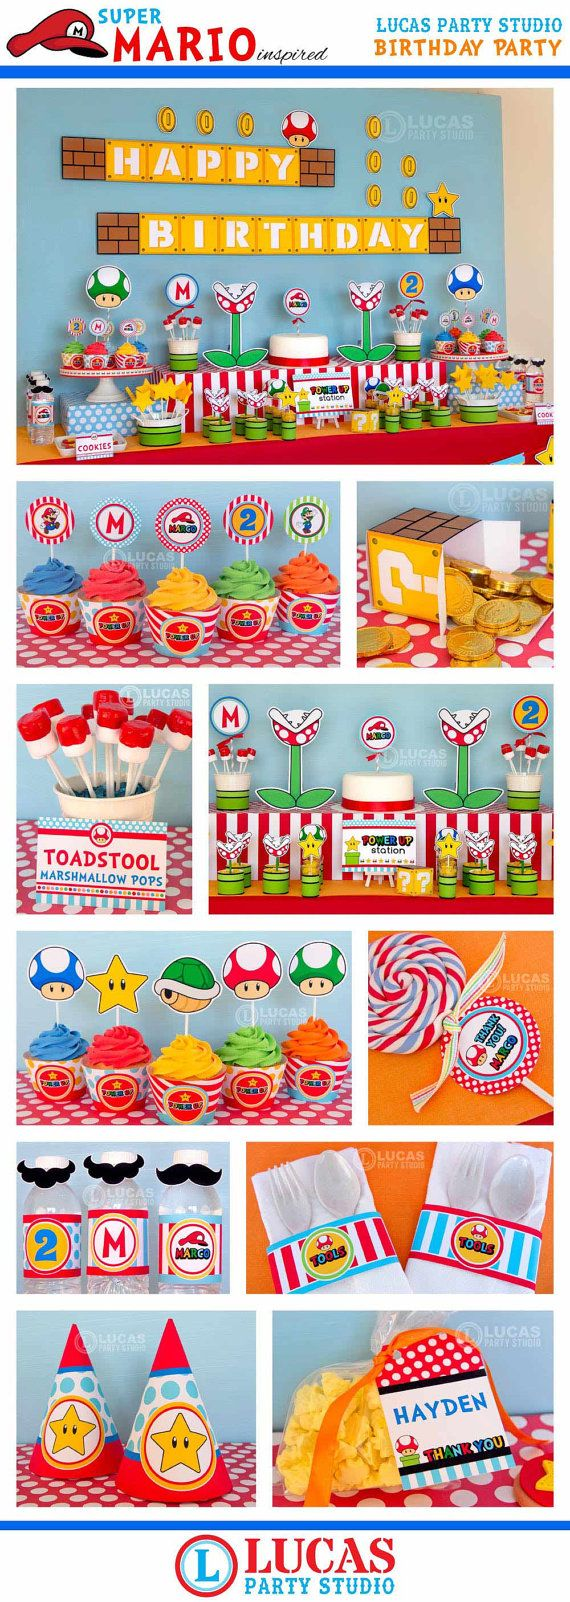 Super Mario Inspired Birthday Party  DIY PRINTABLE